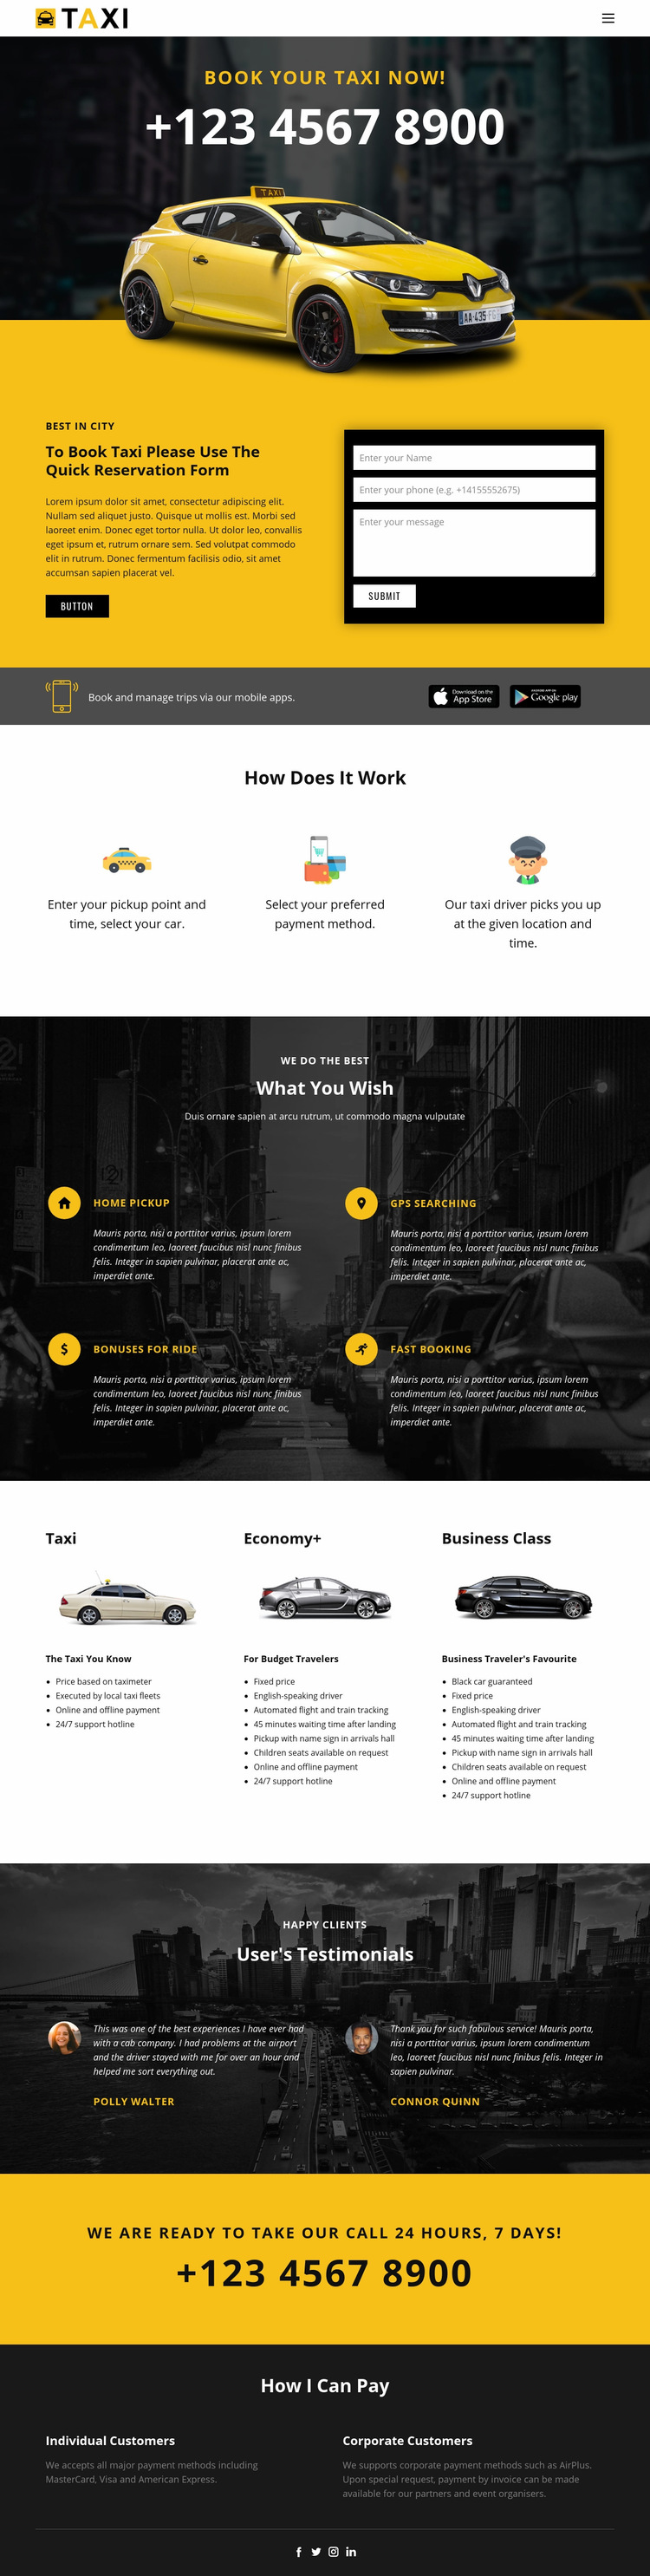 Fastest taxi cars Web Page Design